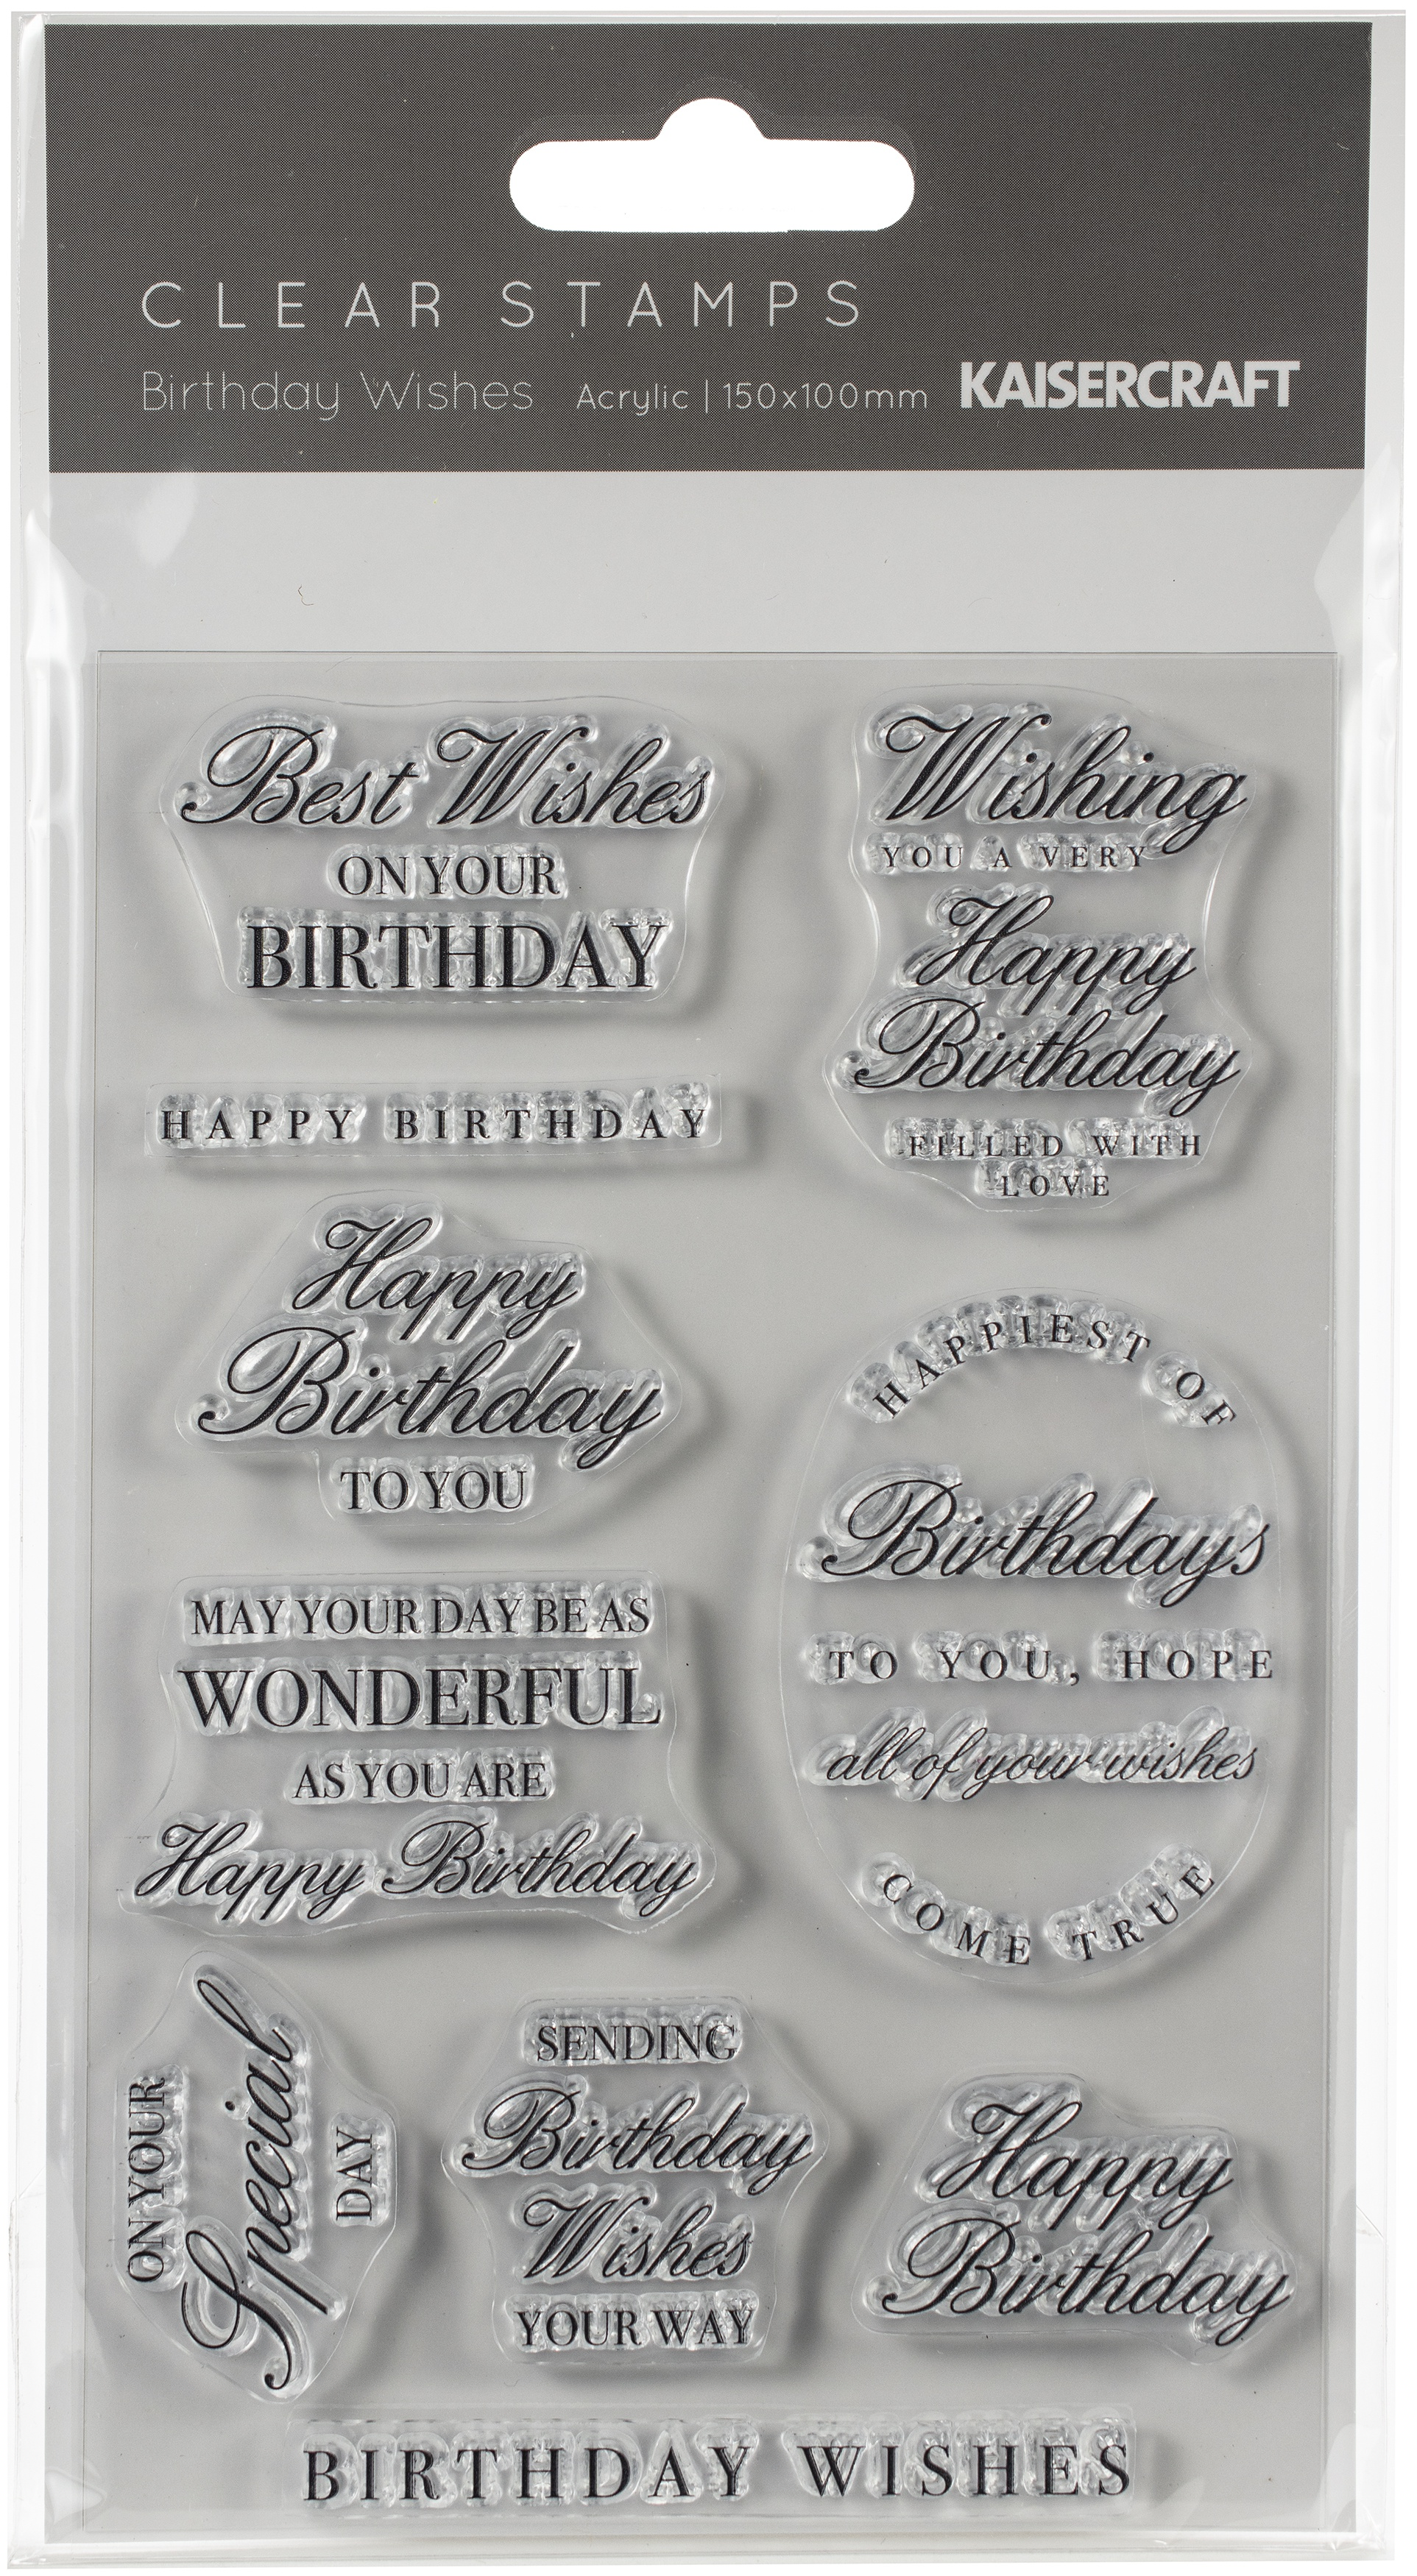 Kaisercraft Clear Stamp 6X4-Birthday Wishes